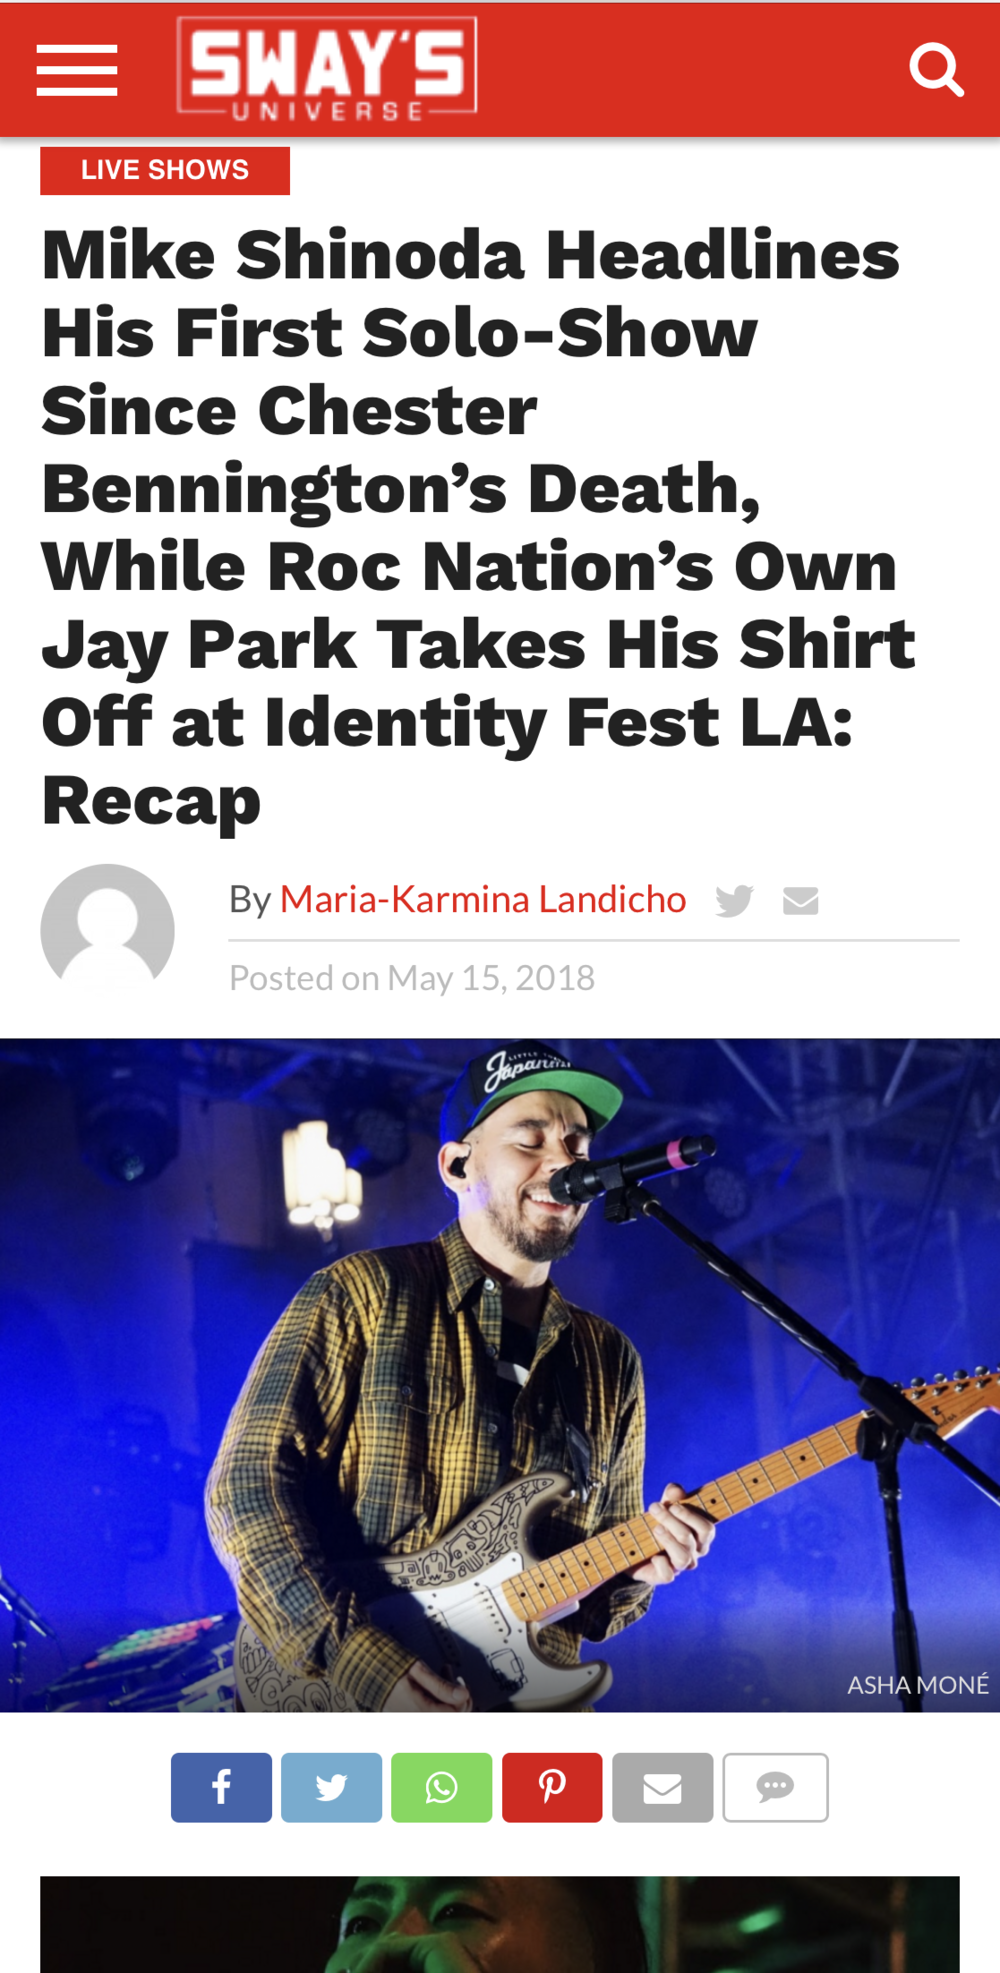 Identity LA 2018 Photo Placement for Sway Universe